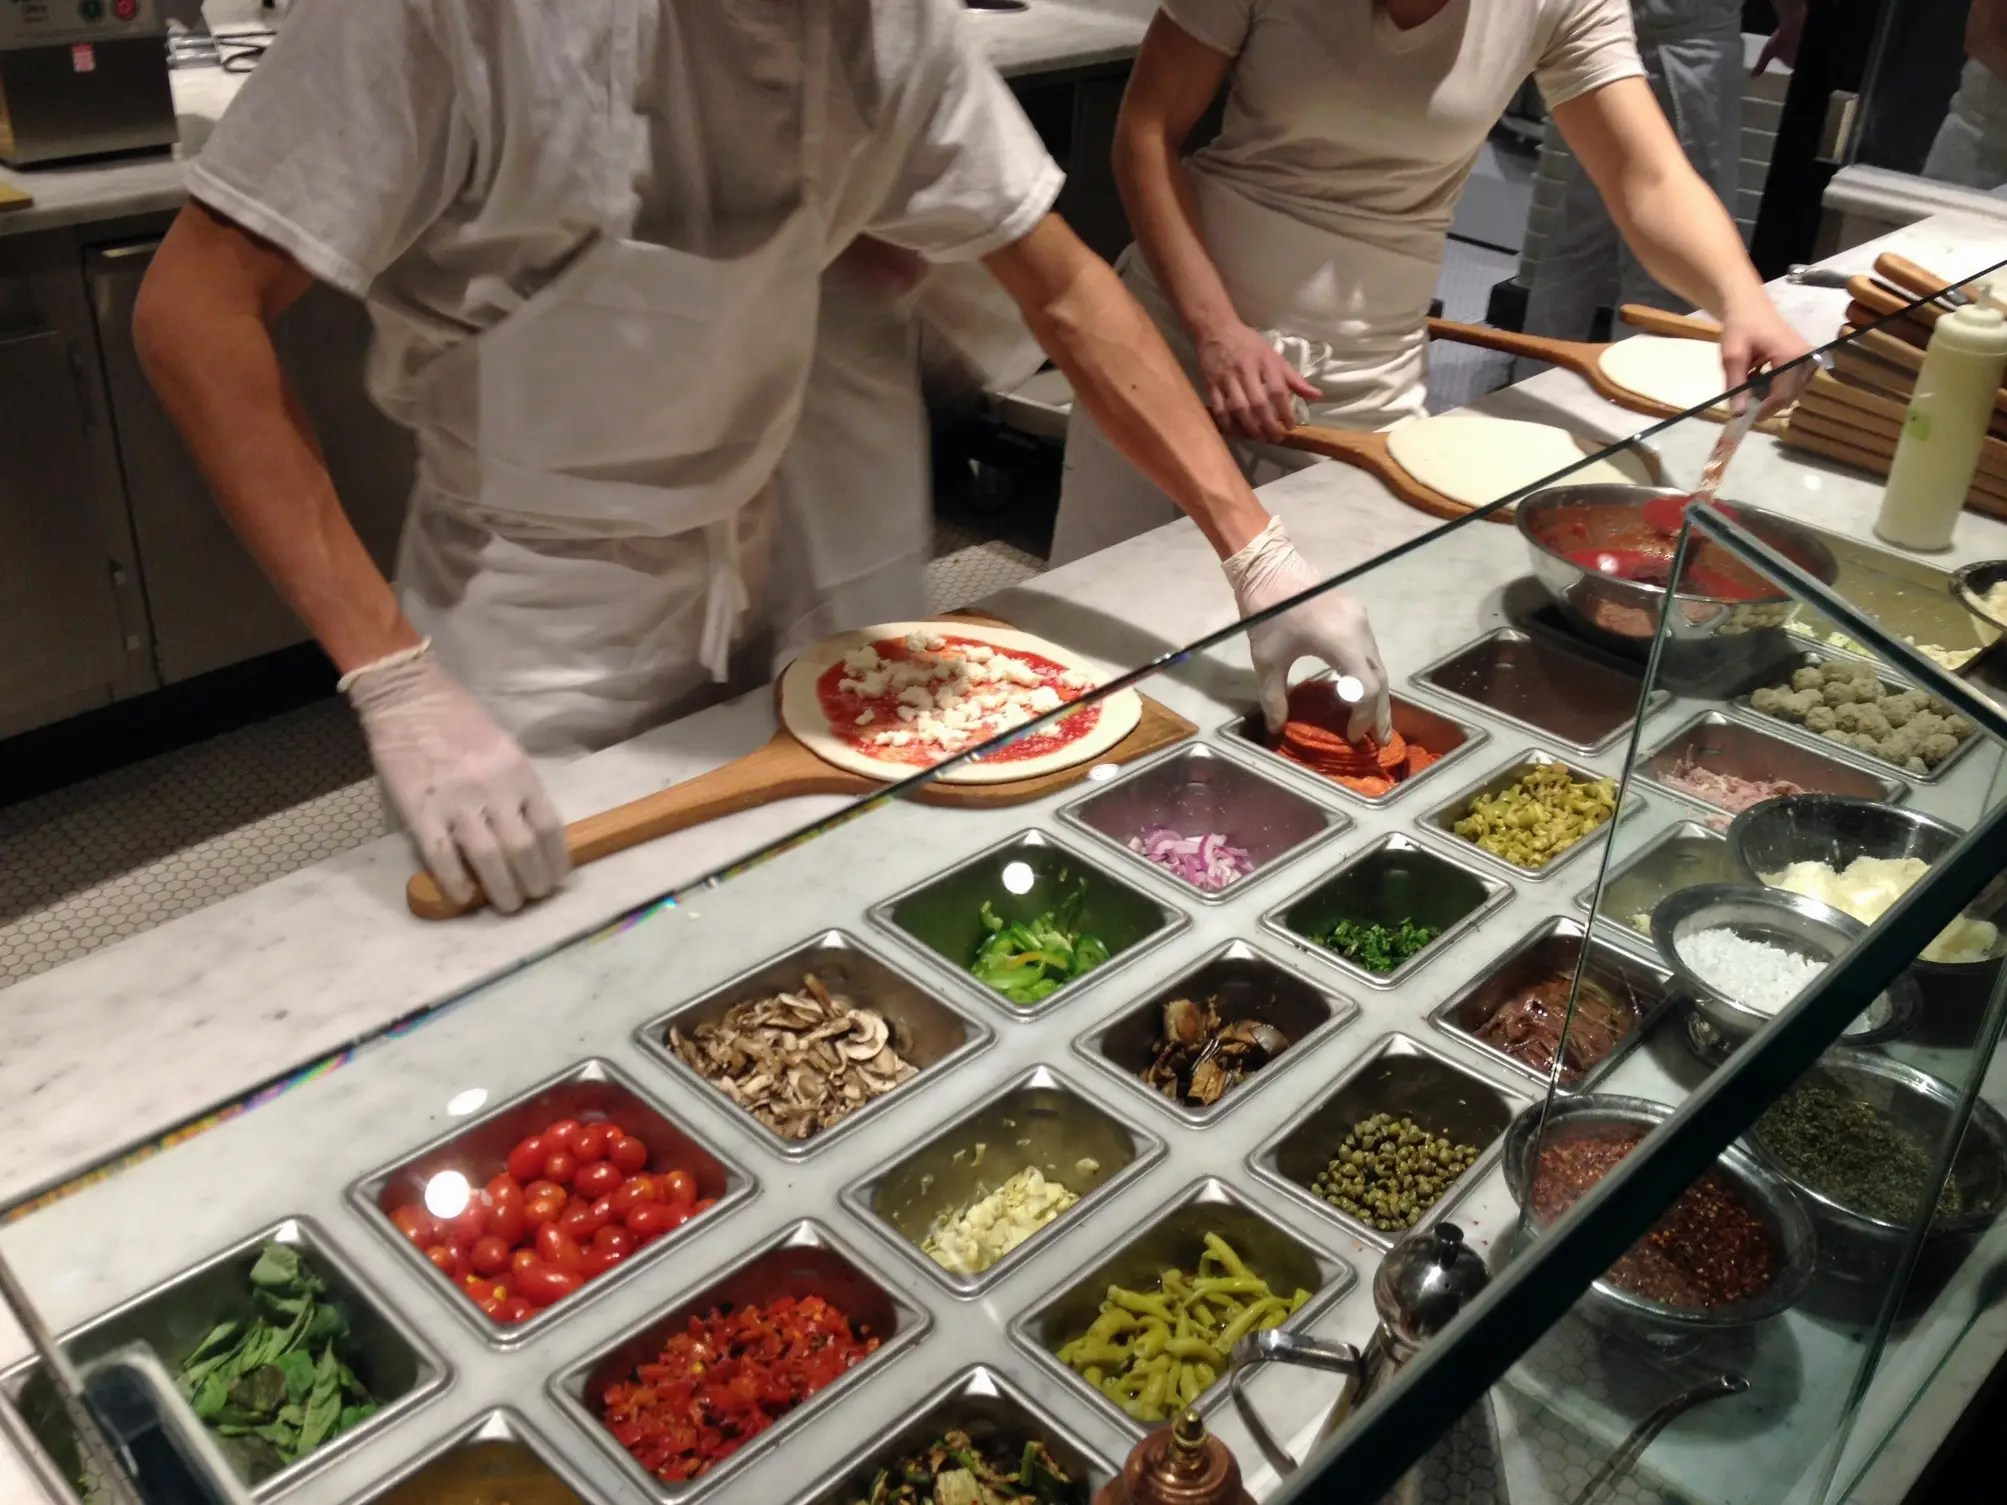 Juegos De Cocina De Hacer Pizza See What It 39s Like To Eat At Chipotle 39s New Pizzeria In